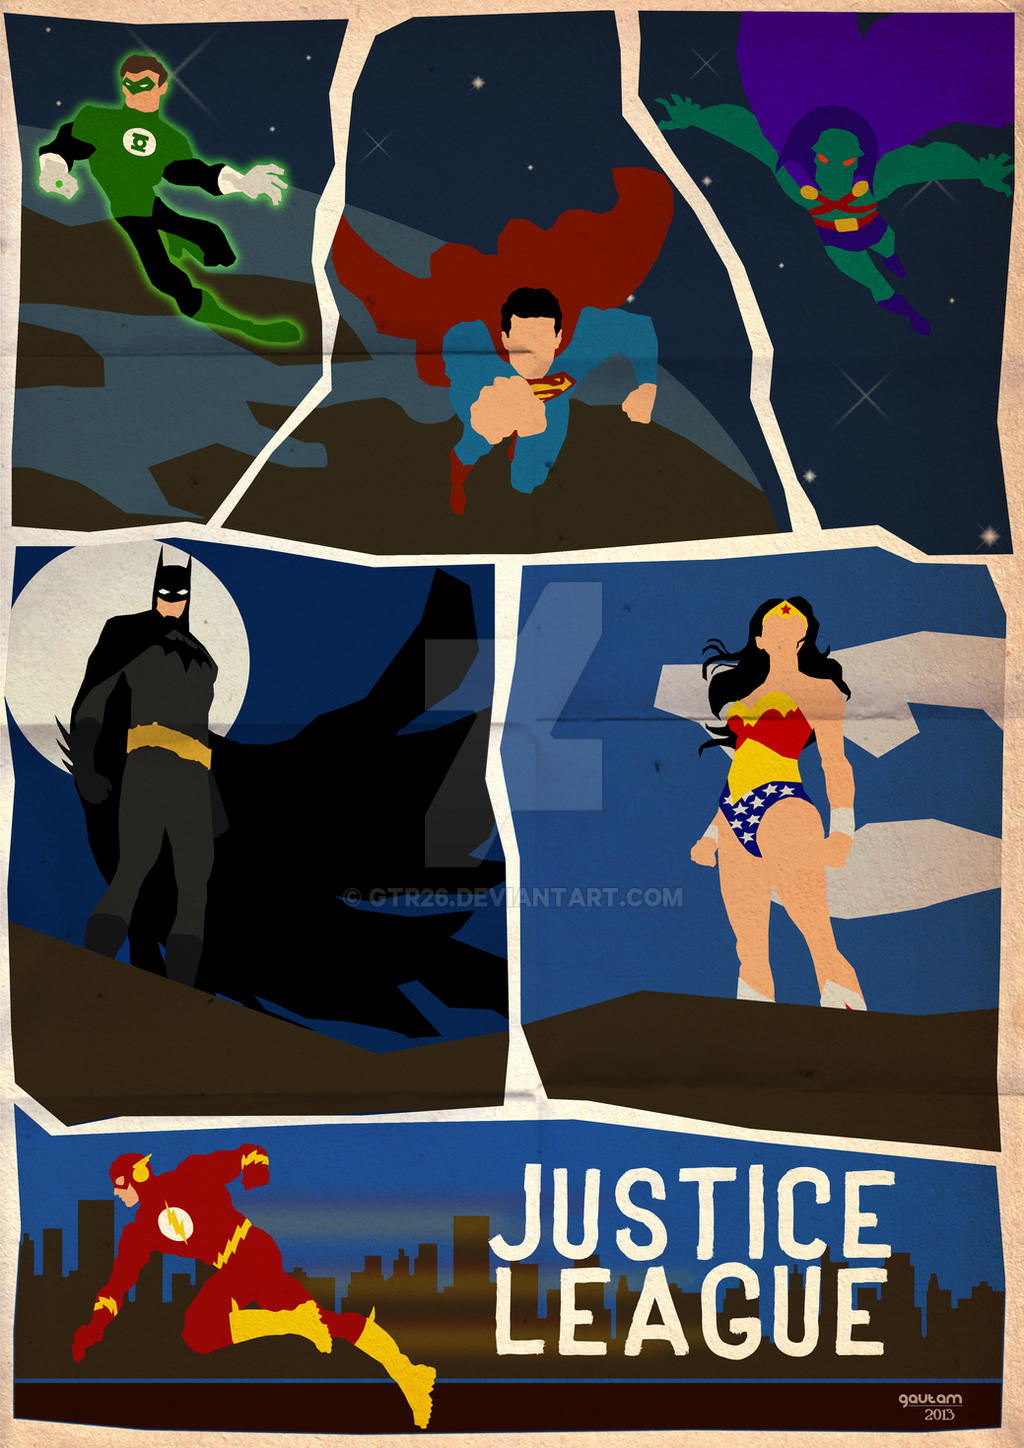 Team Up: Justice League by GTR26